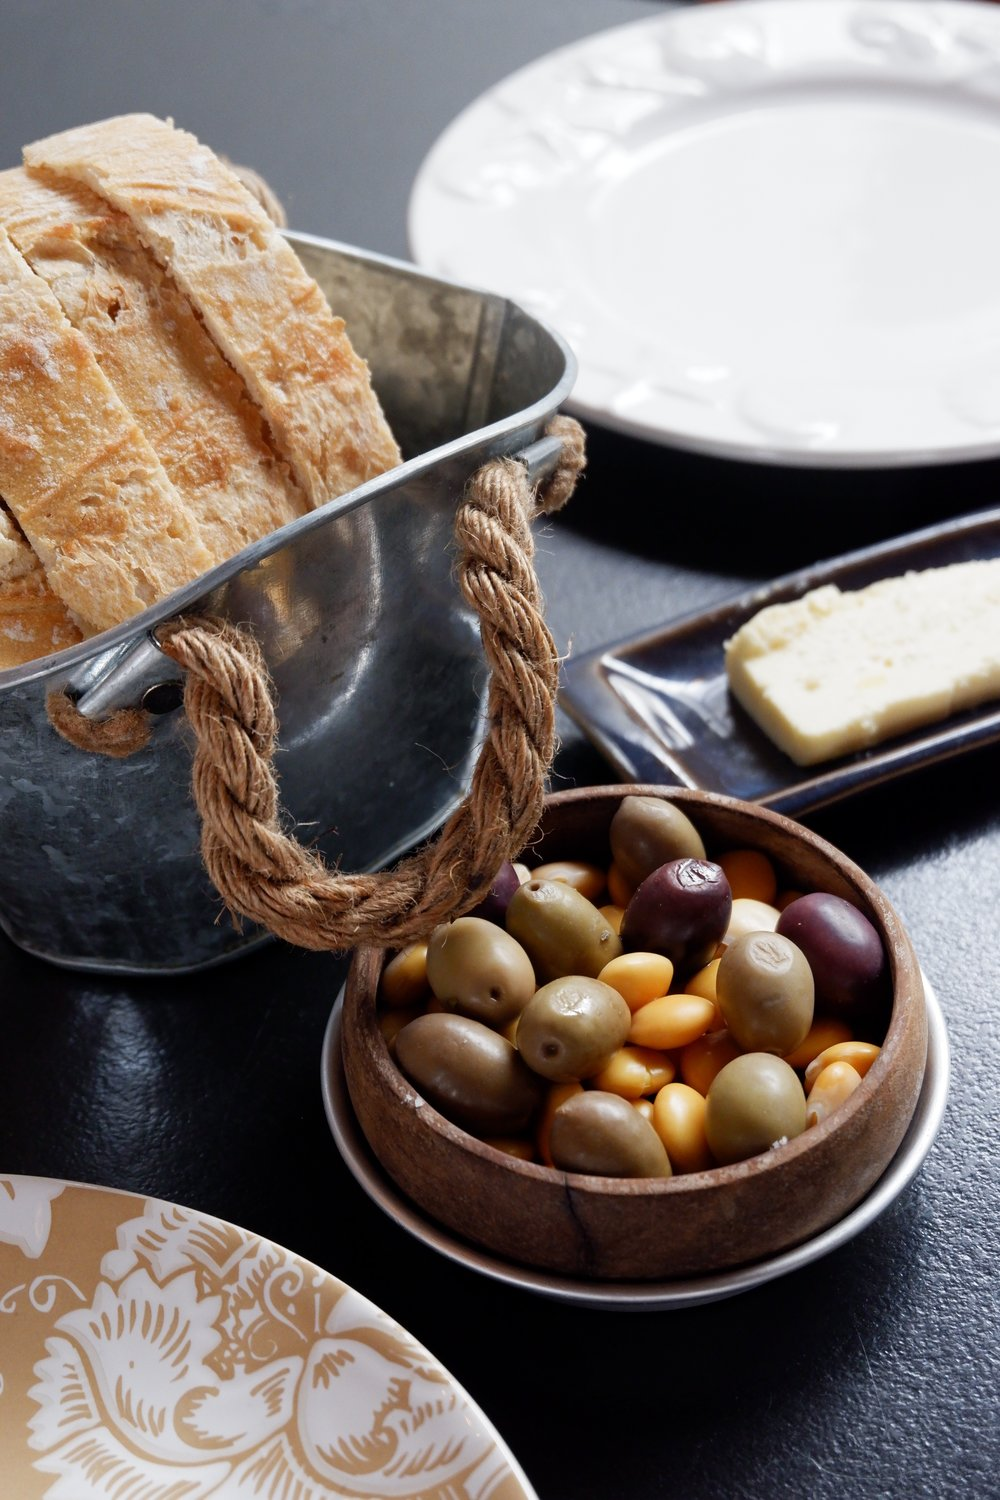 Cantina-32-bread-basket-and-olives